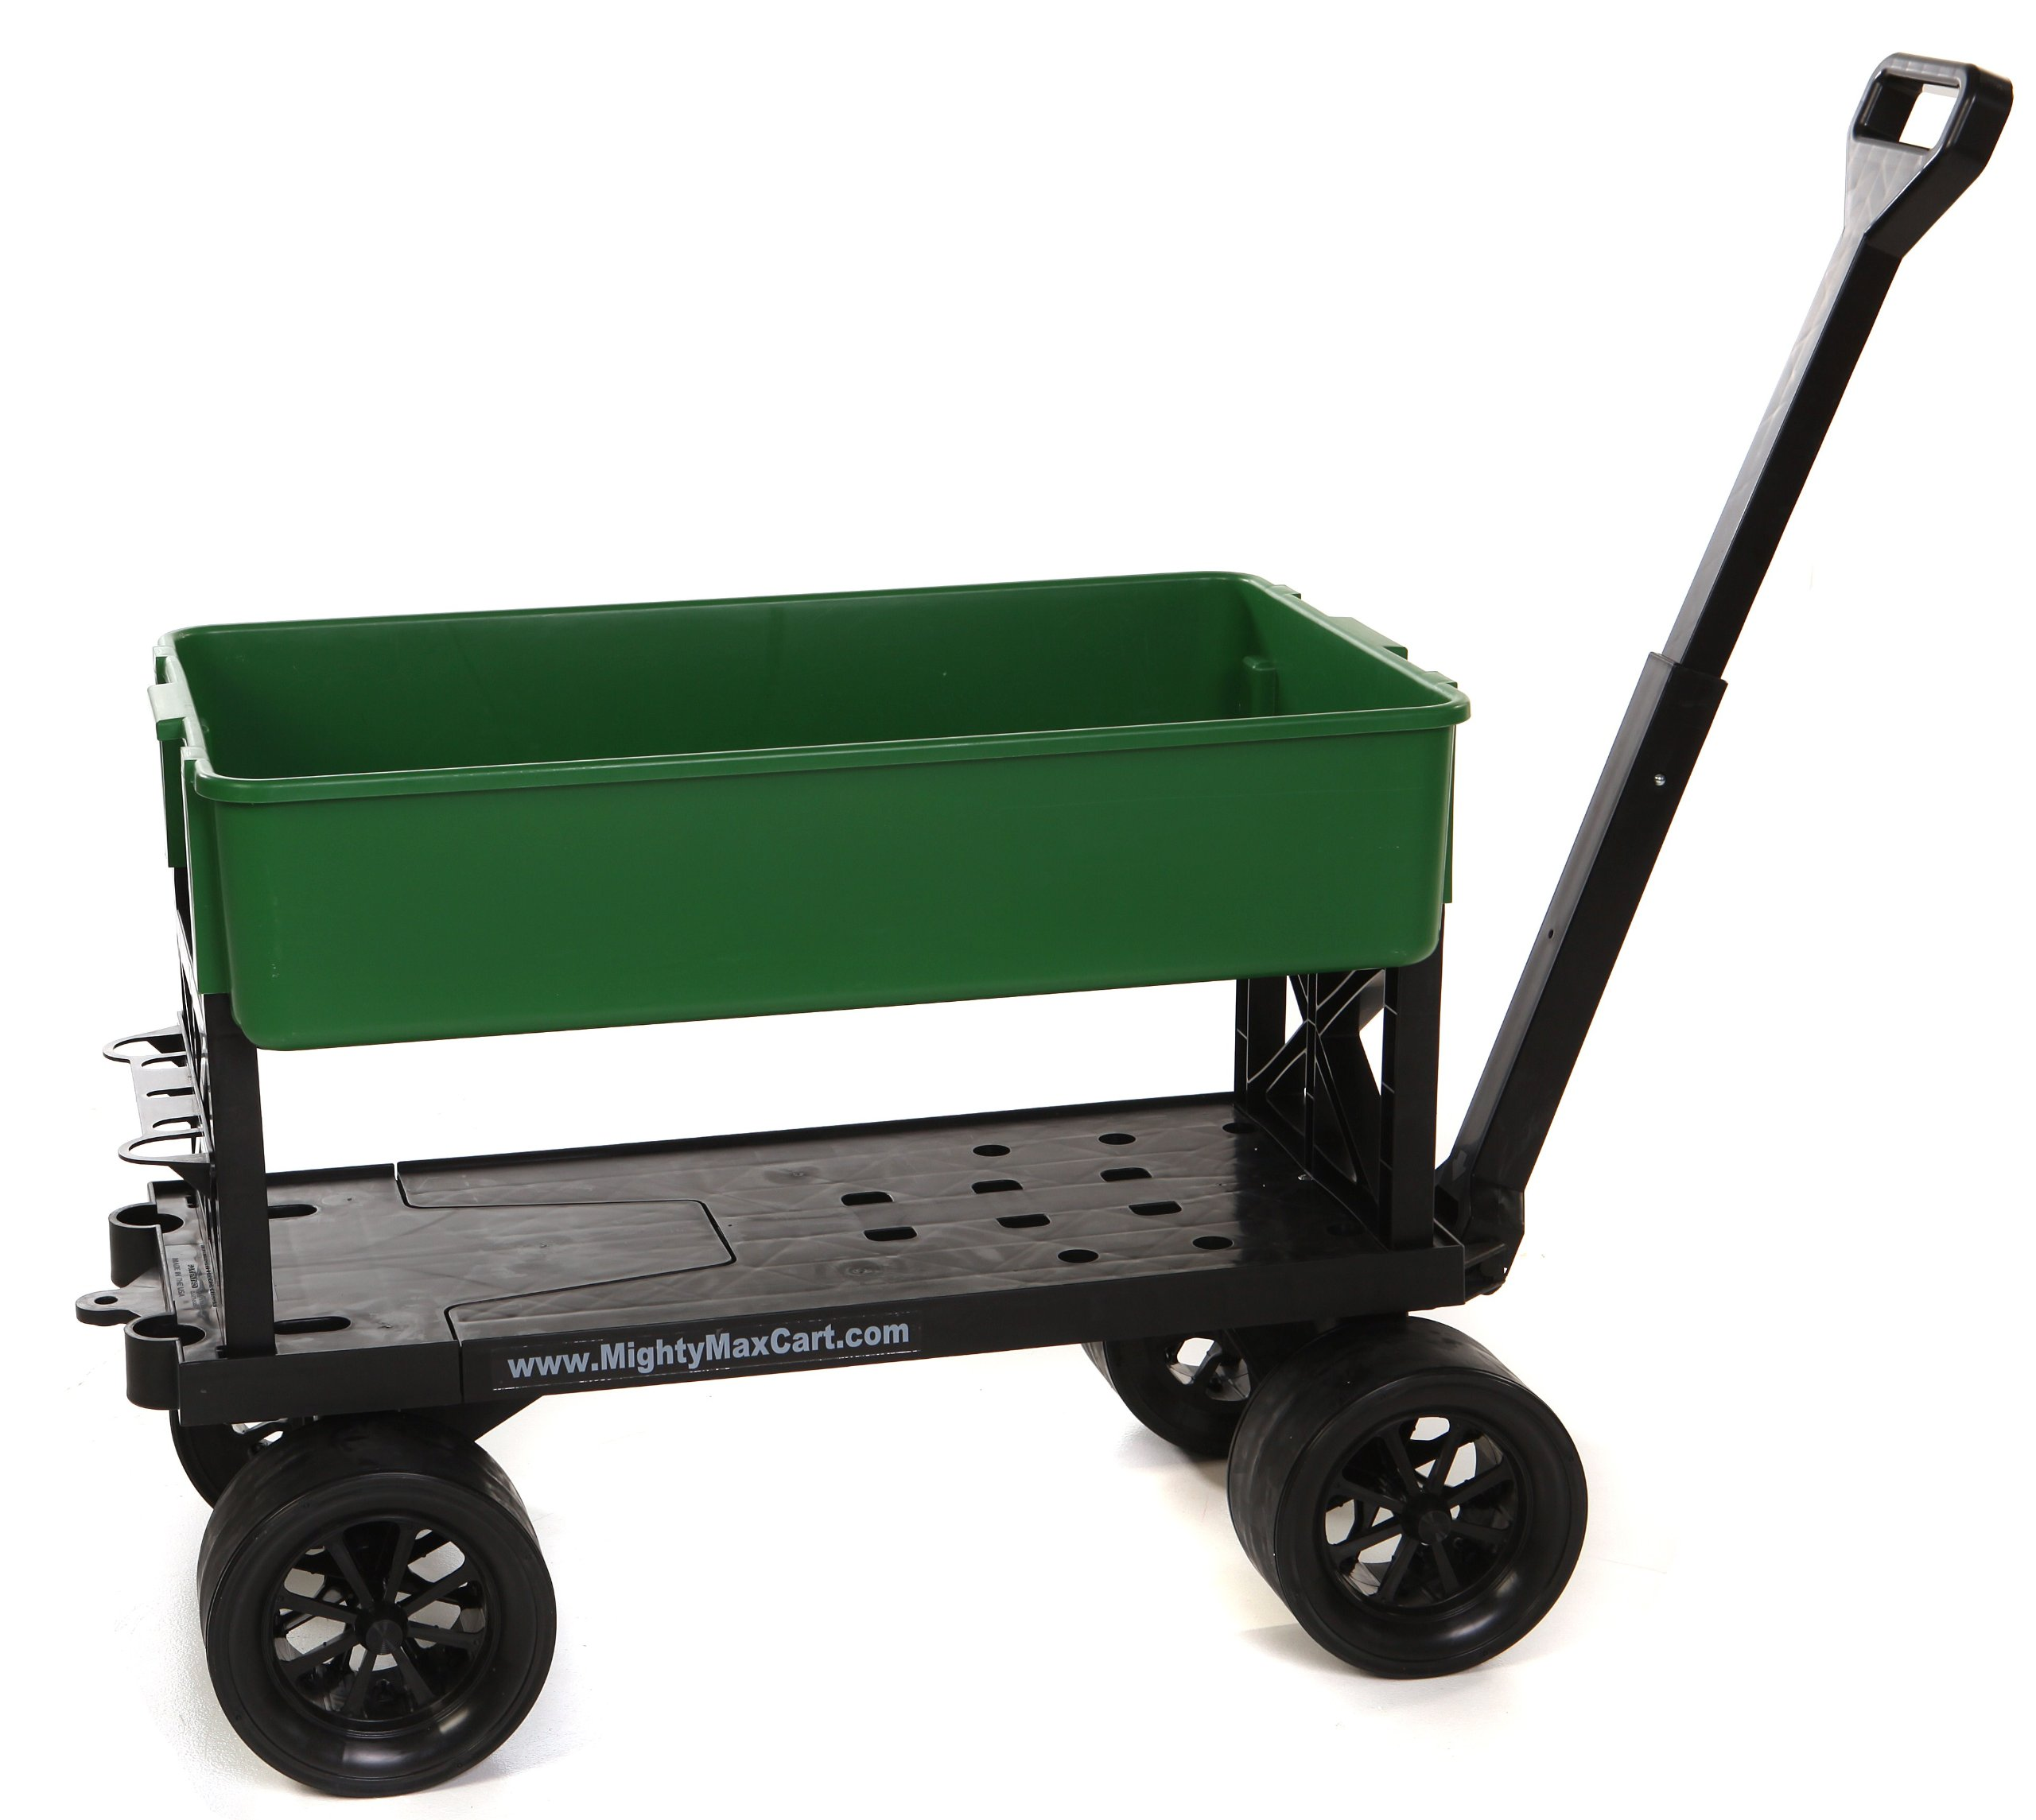 Mighty Max Cart All-Purpose Utility and Garden Cart with Green Tub, 400 Lb Capacity